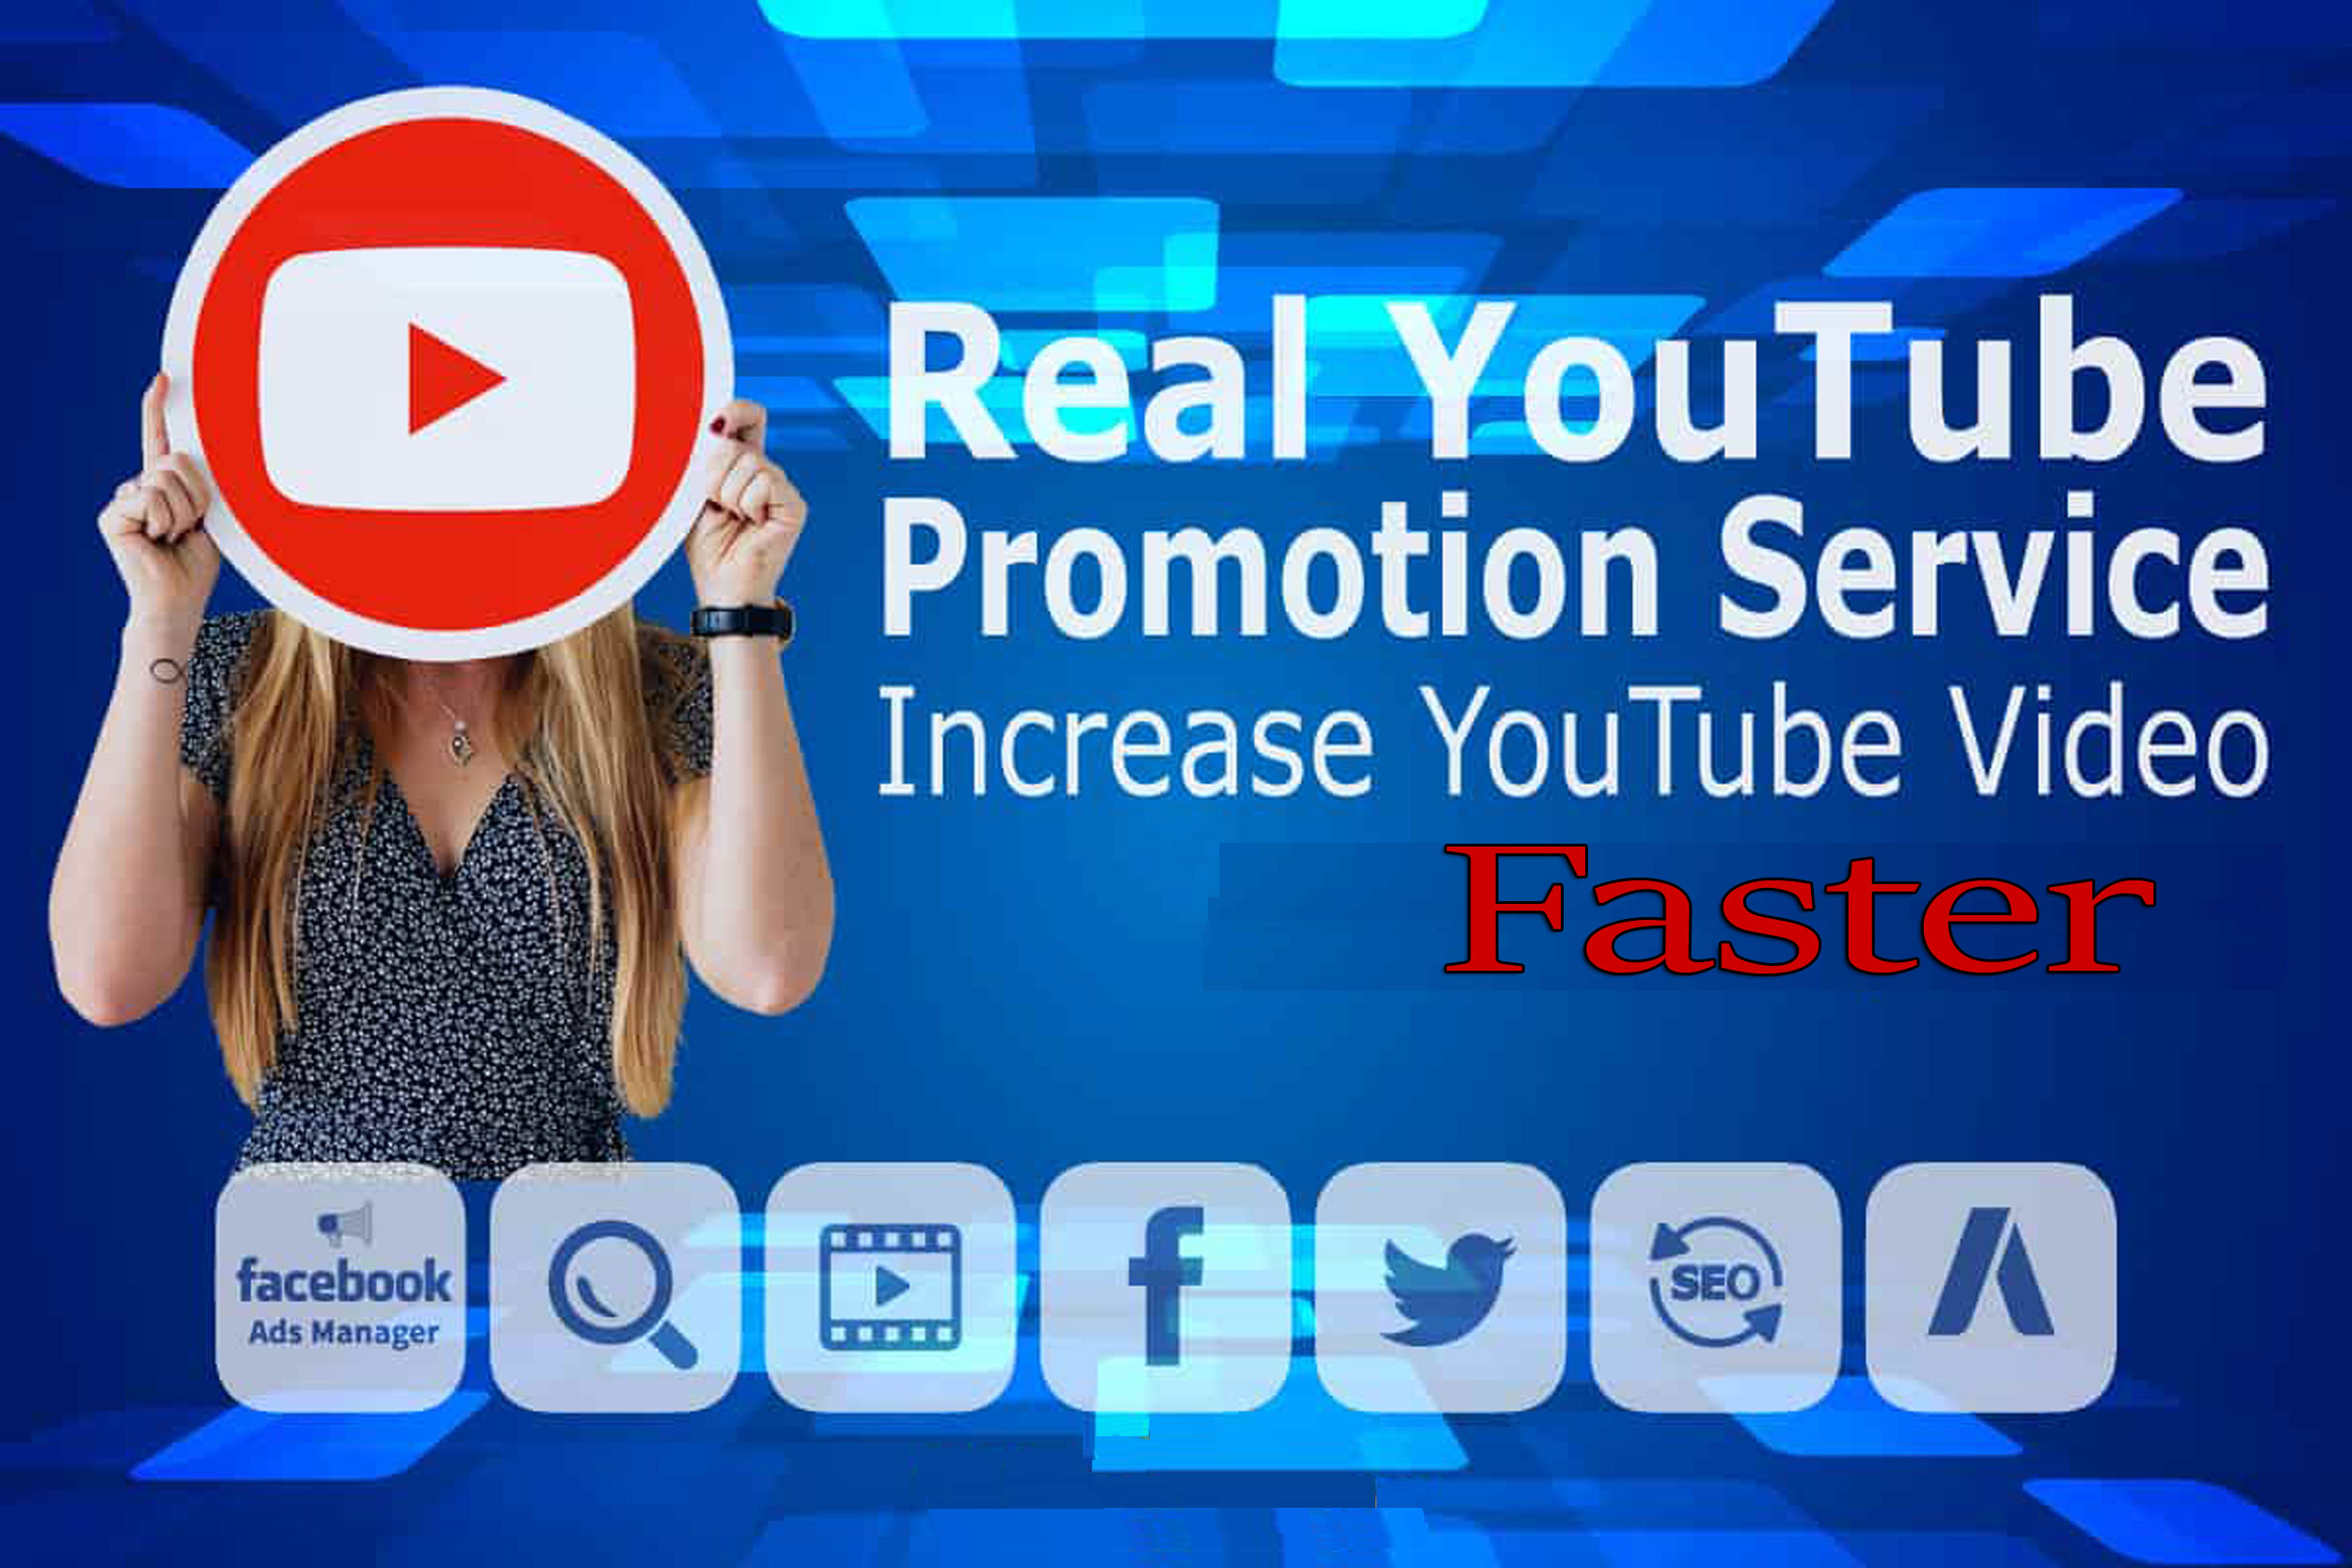 Organically YouTube Gaming Video Ranking and Promotion for Real Audience Engagements